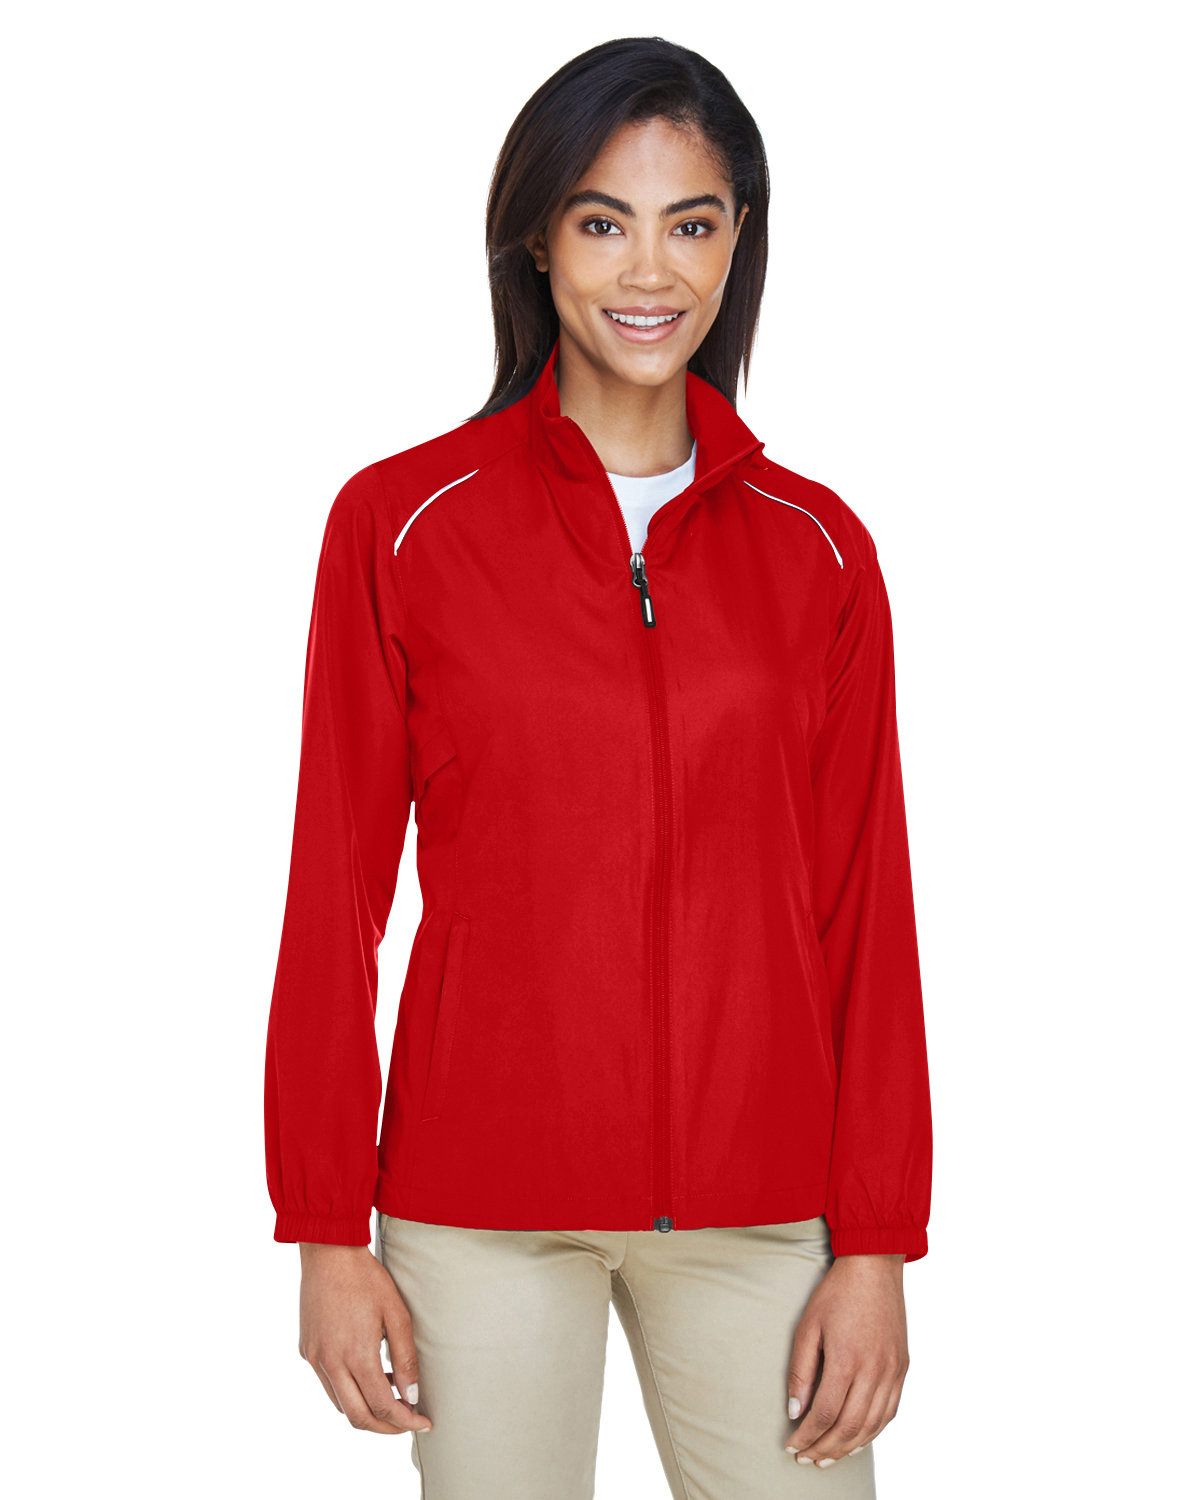 Core 365 Ladies' Motivate Unlined Lightweight Jacket CLASSIC RED